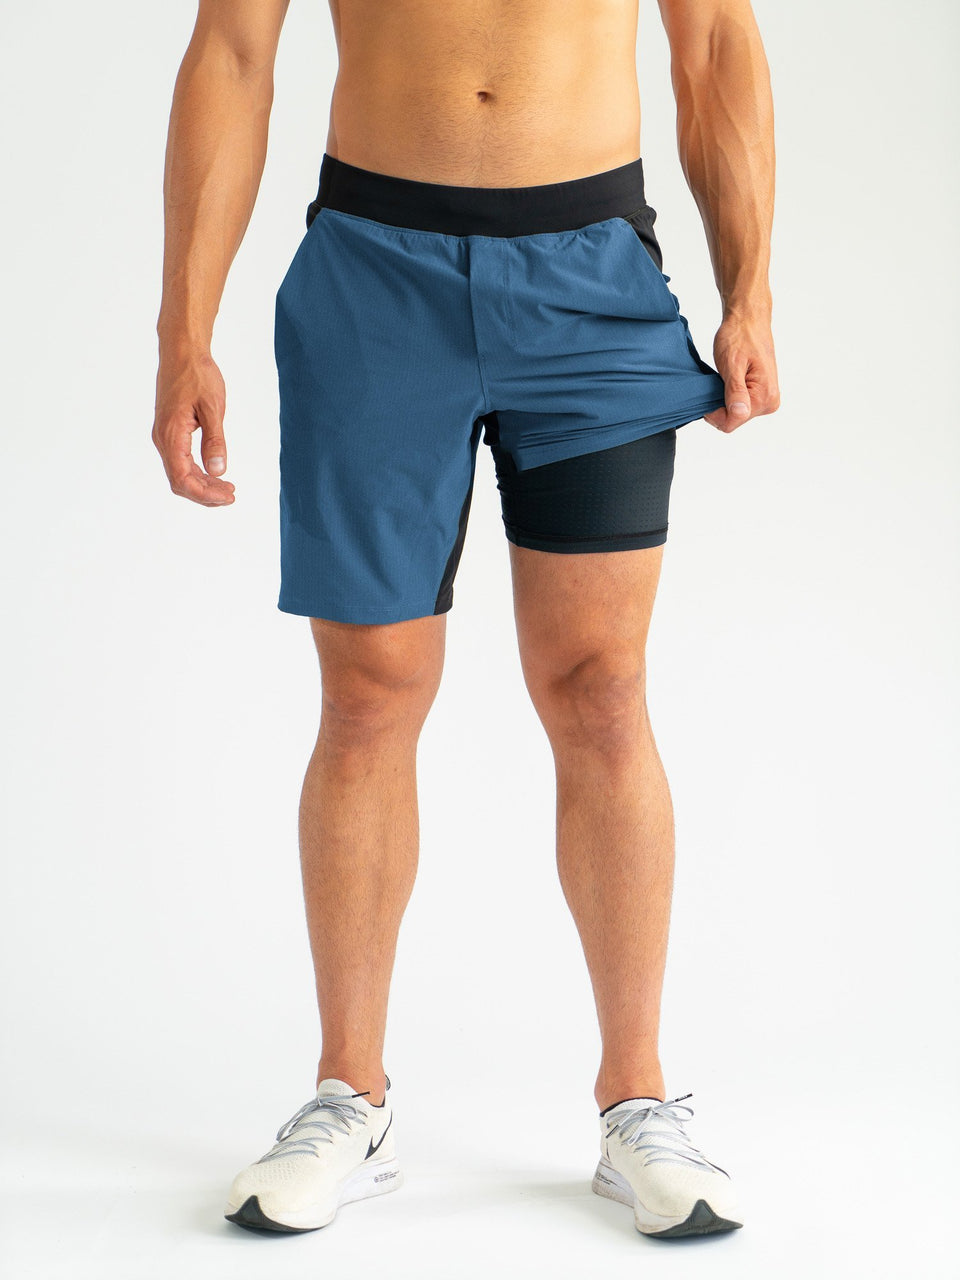 THE X SHORT - Indigo L - SODO Apparel - SHORTS